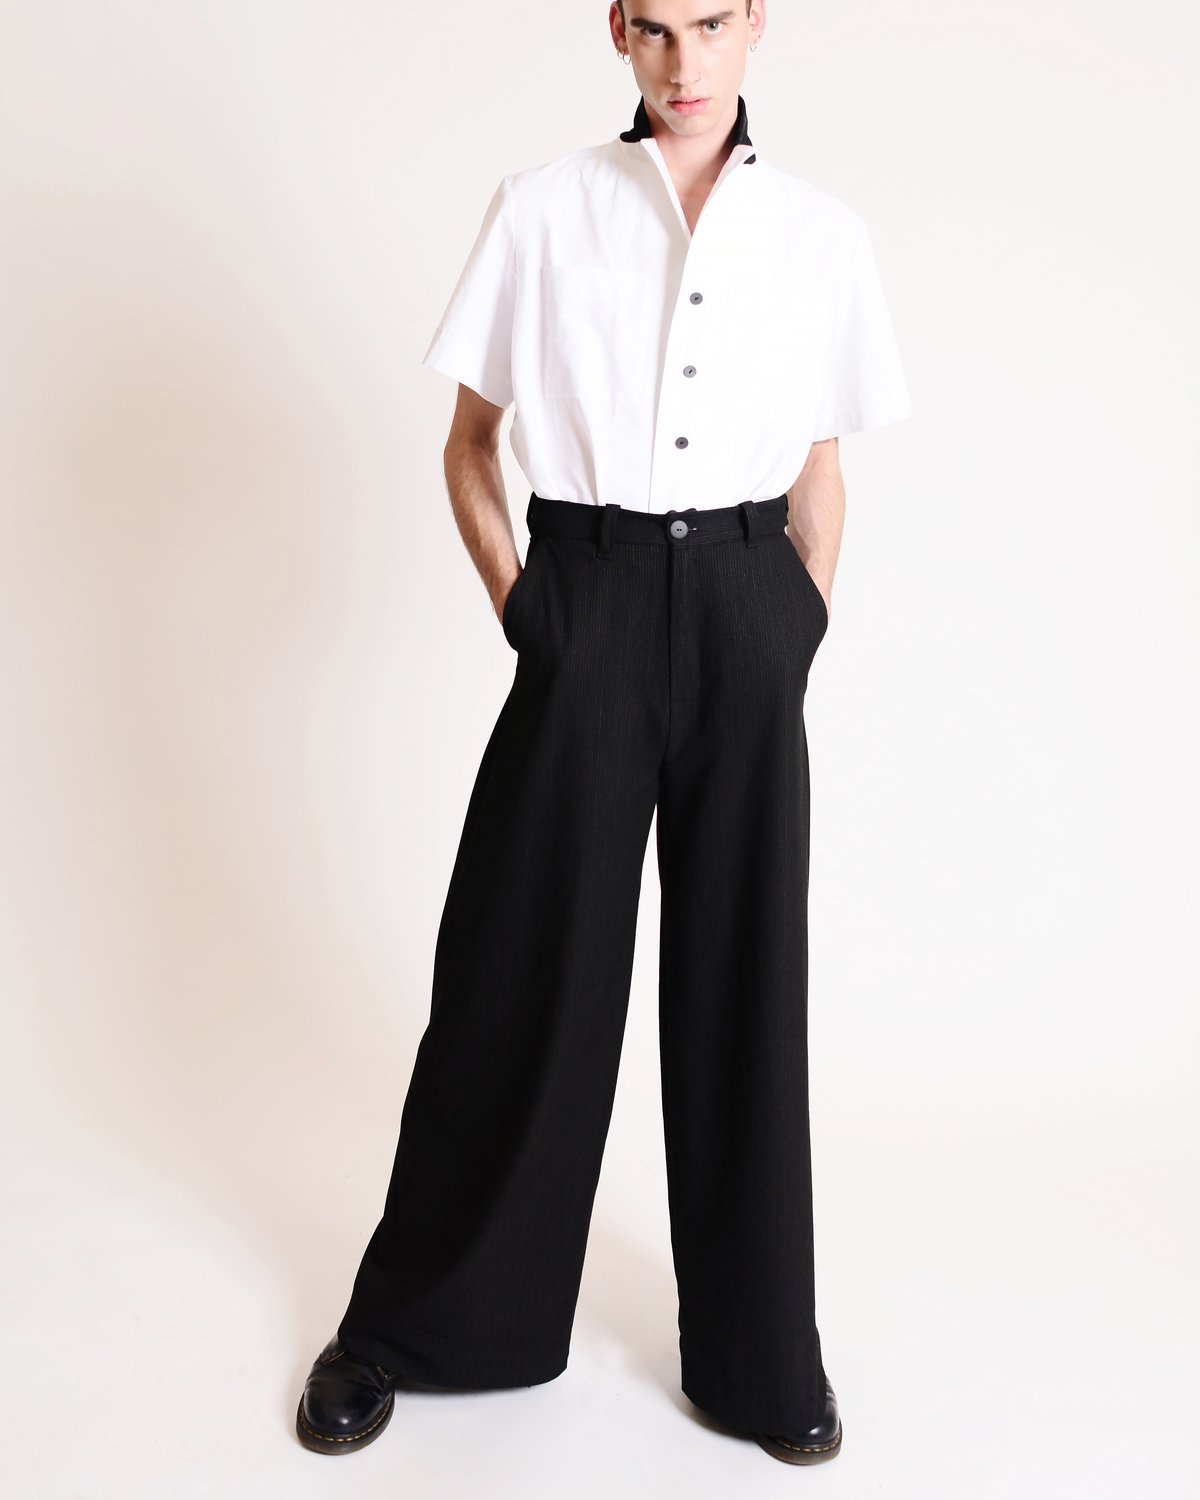 SARA ARMSTRONG, CORE PART 1, TORRENT TROUSERS